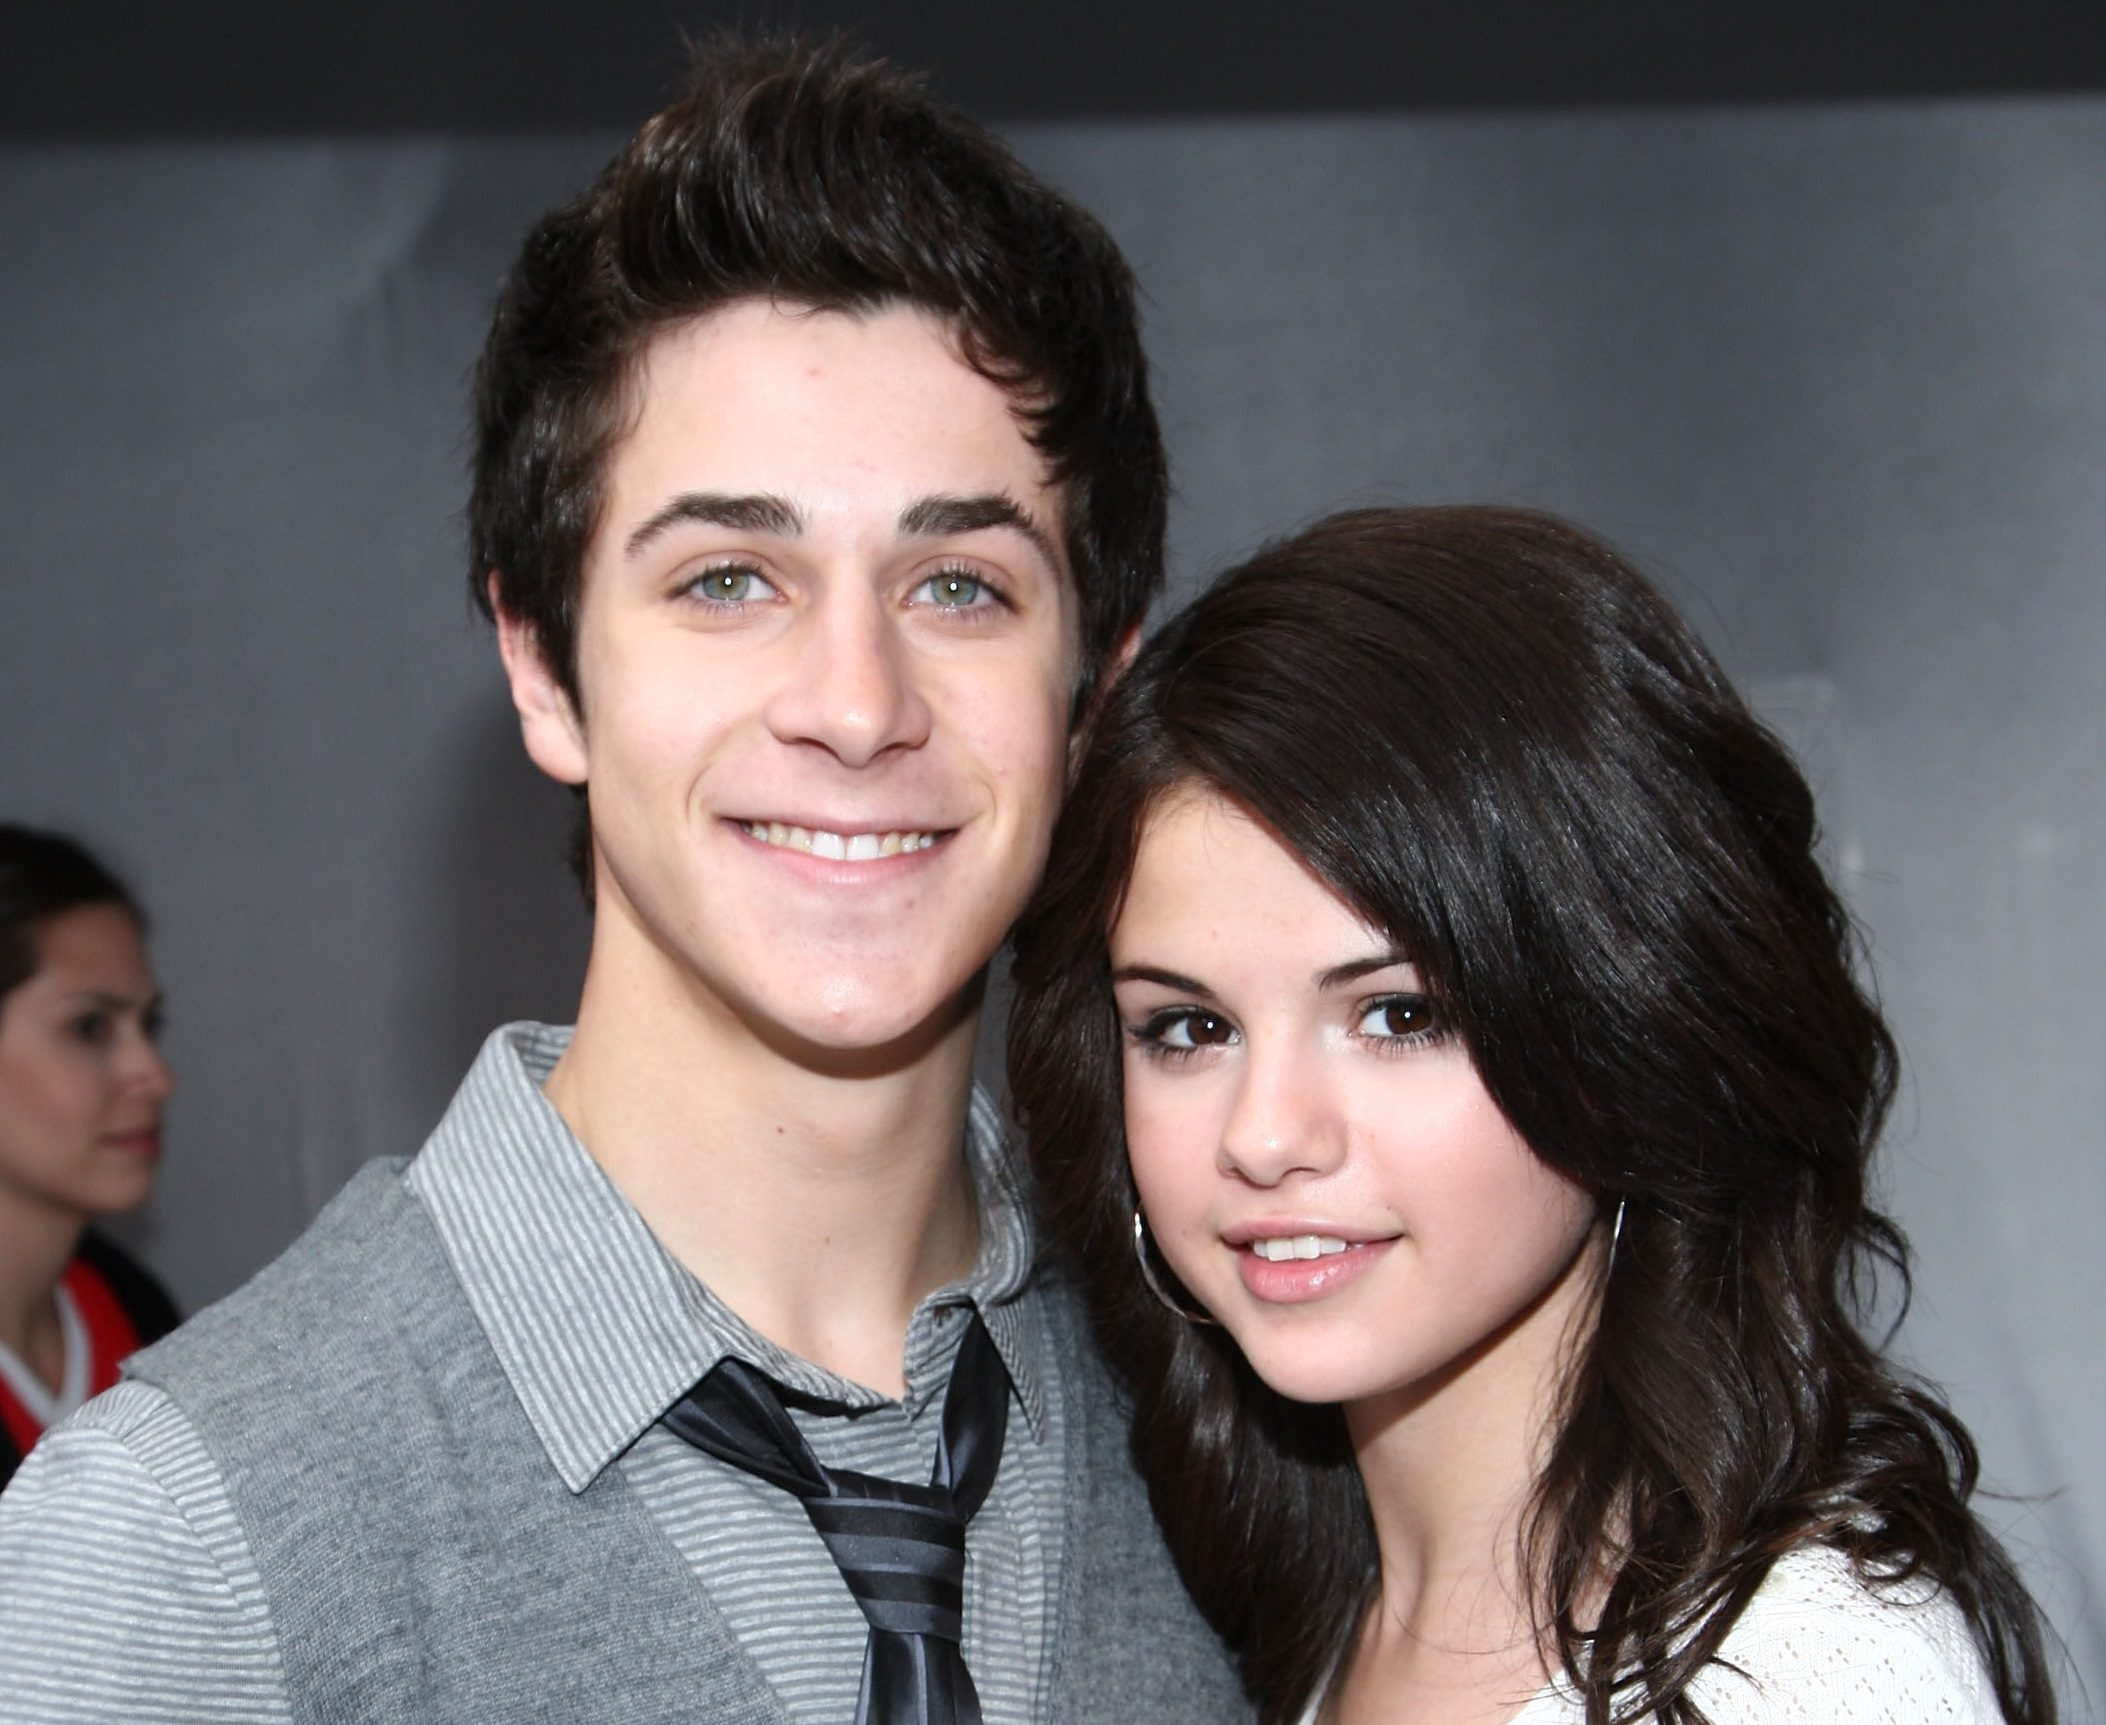 Did Justin And Alex Dating In Real Life Wizards Of Waverly Place?